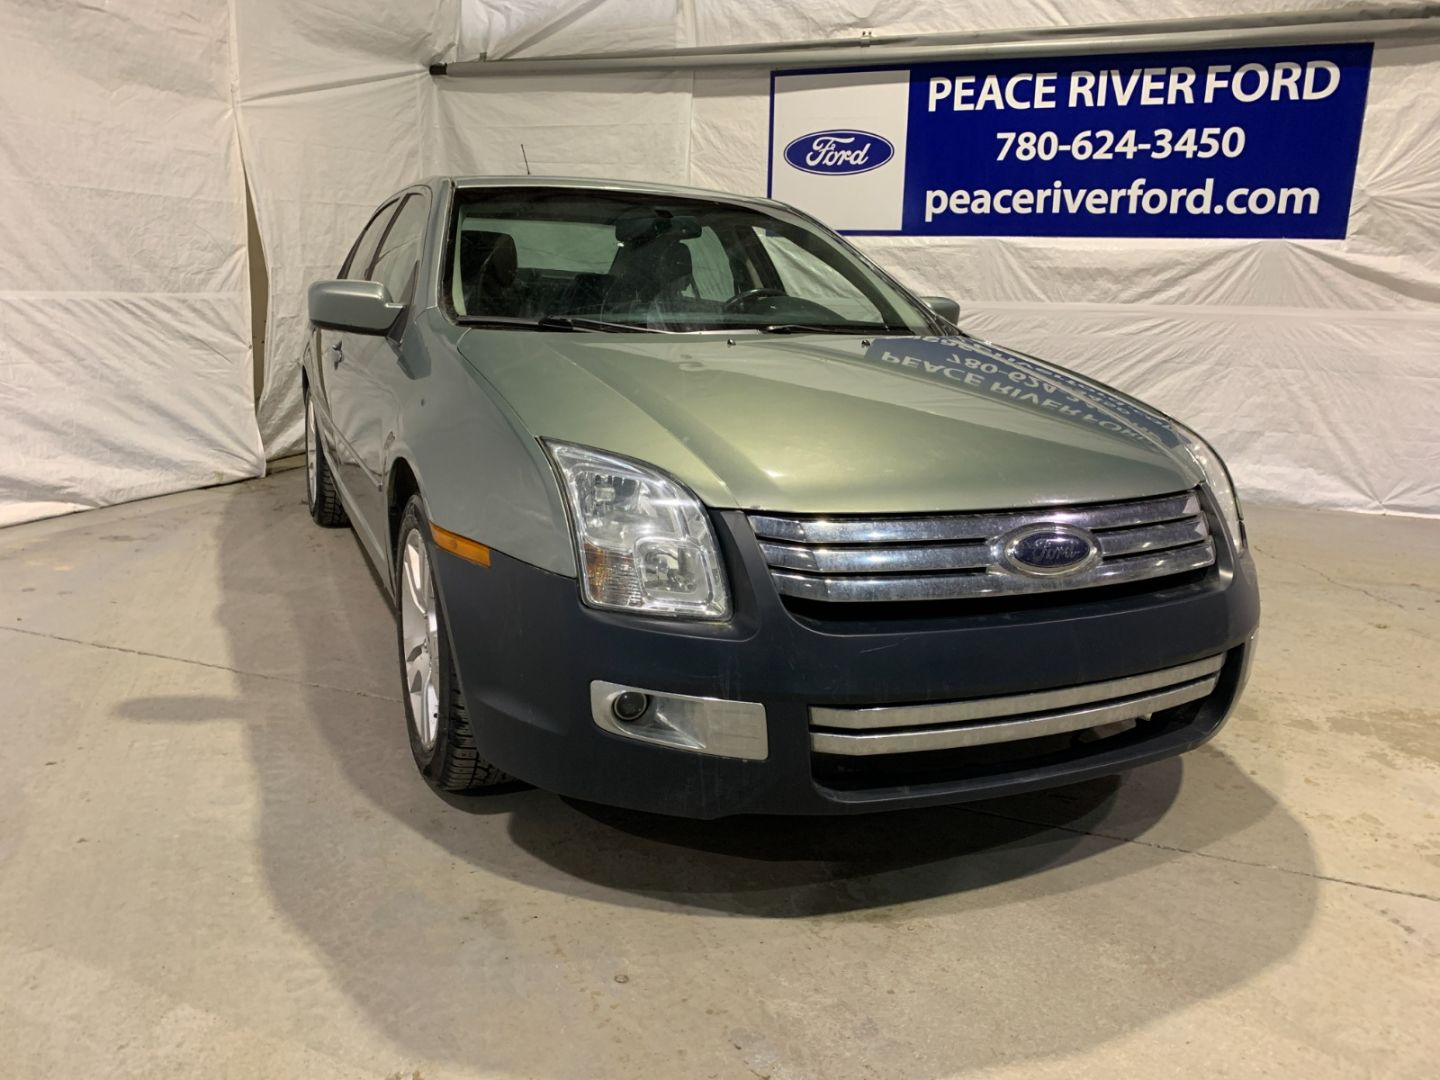 2008 Ford Fusion SEL for sale in Peace River, Alberta